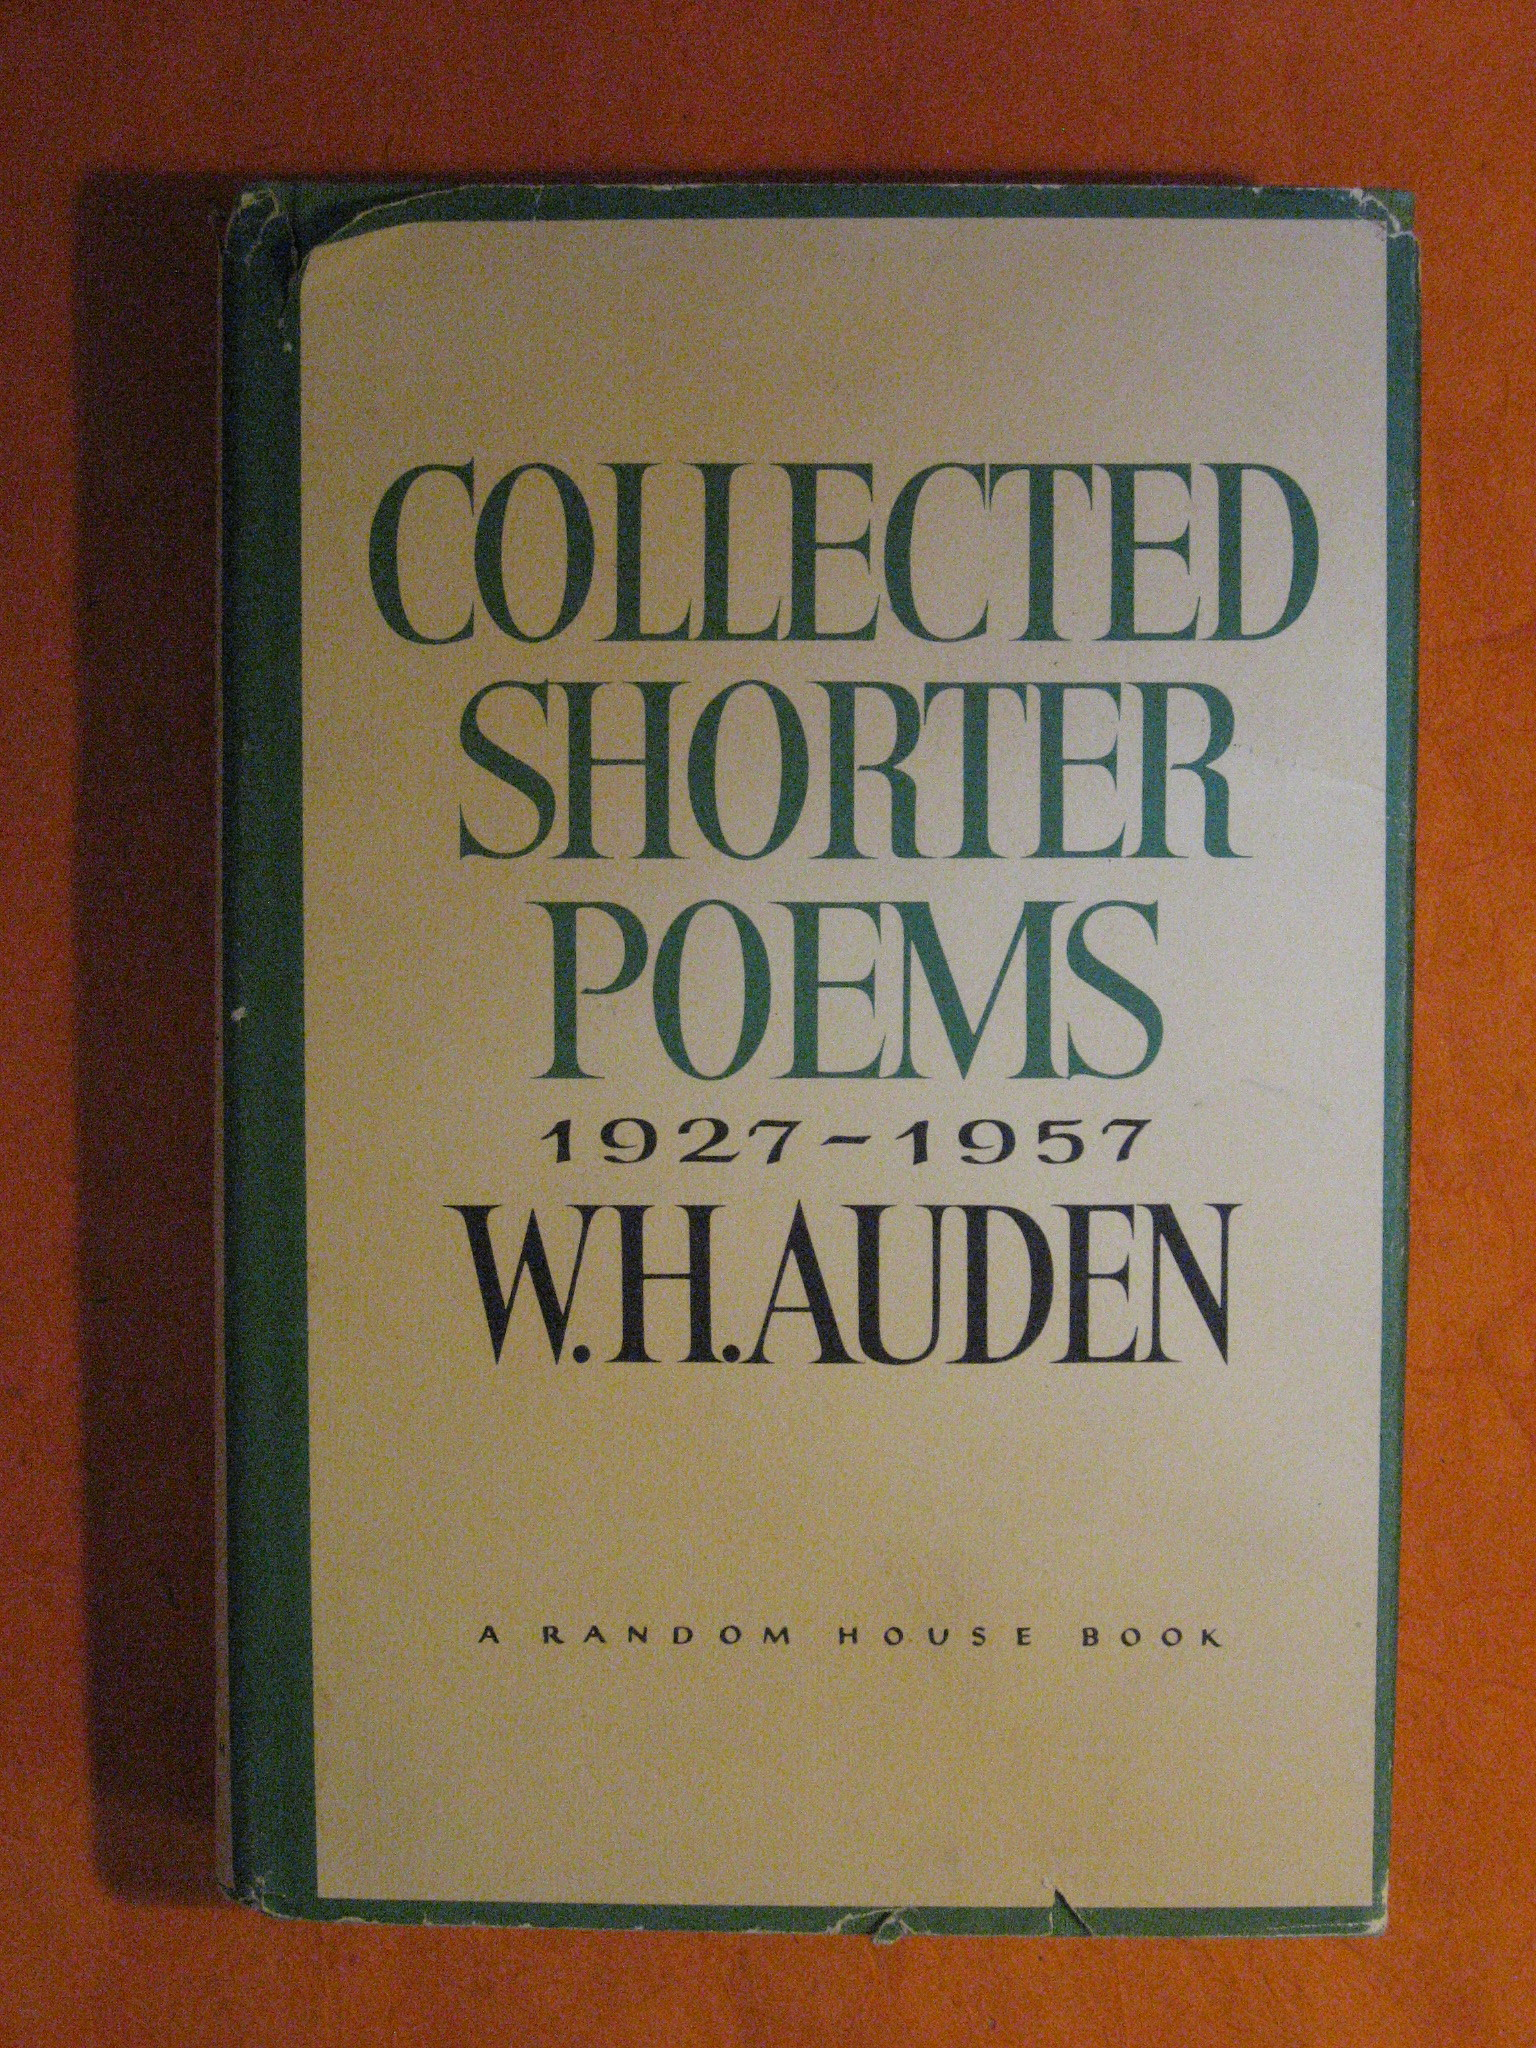 Collected Shorter Poems 1927-1957, Auden, W.H.